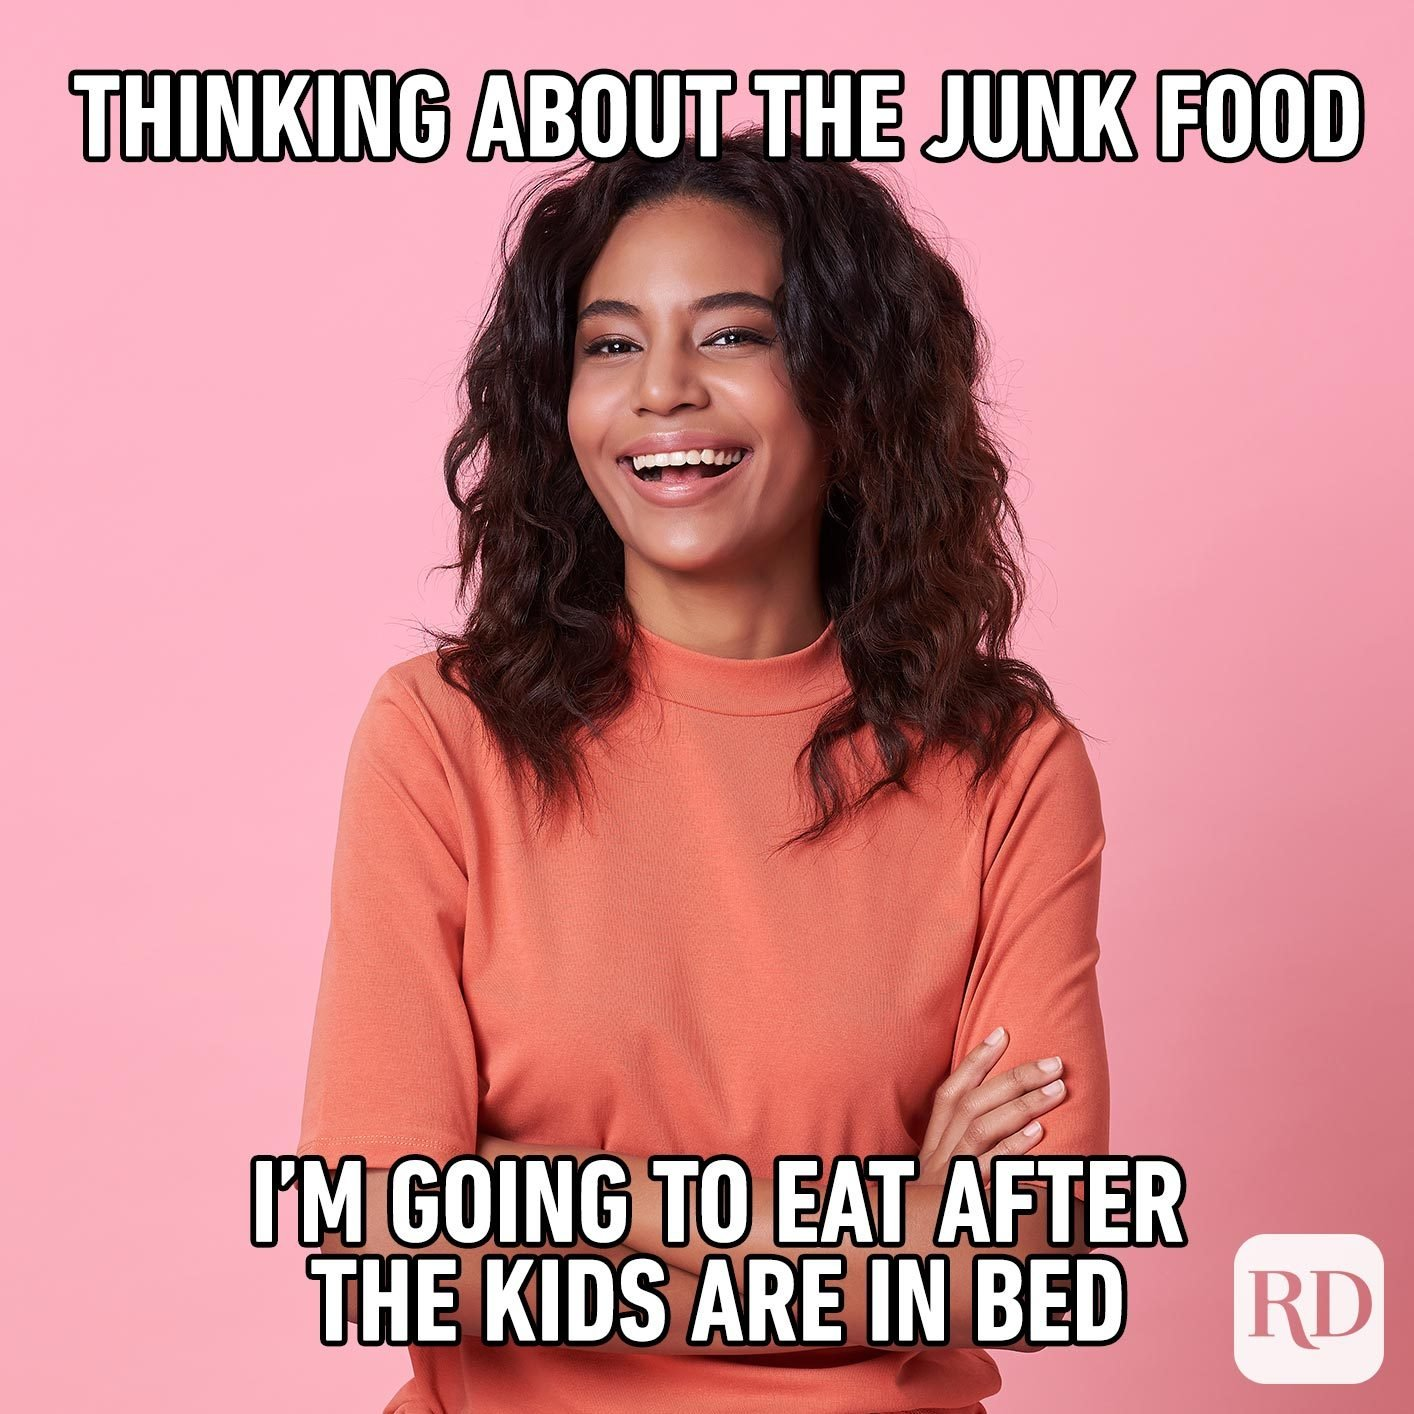 Woman with arms crossed, smiling. MEME TEXT: Thinking about the junk food I'm going to eat after the kids are in bed